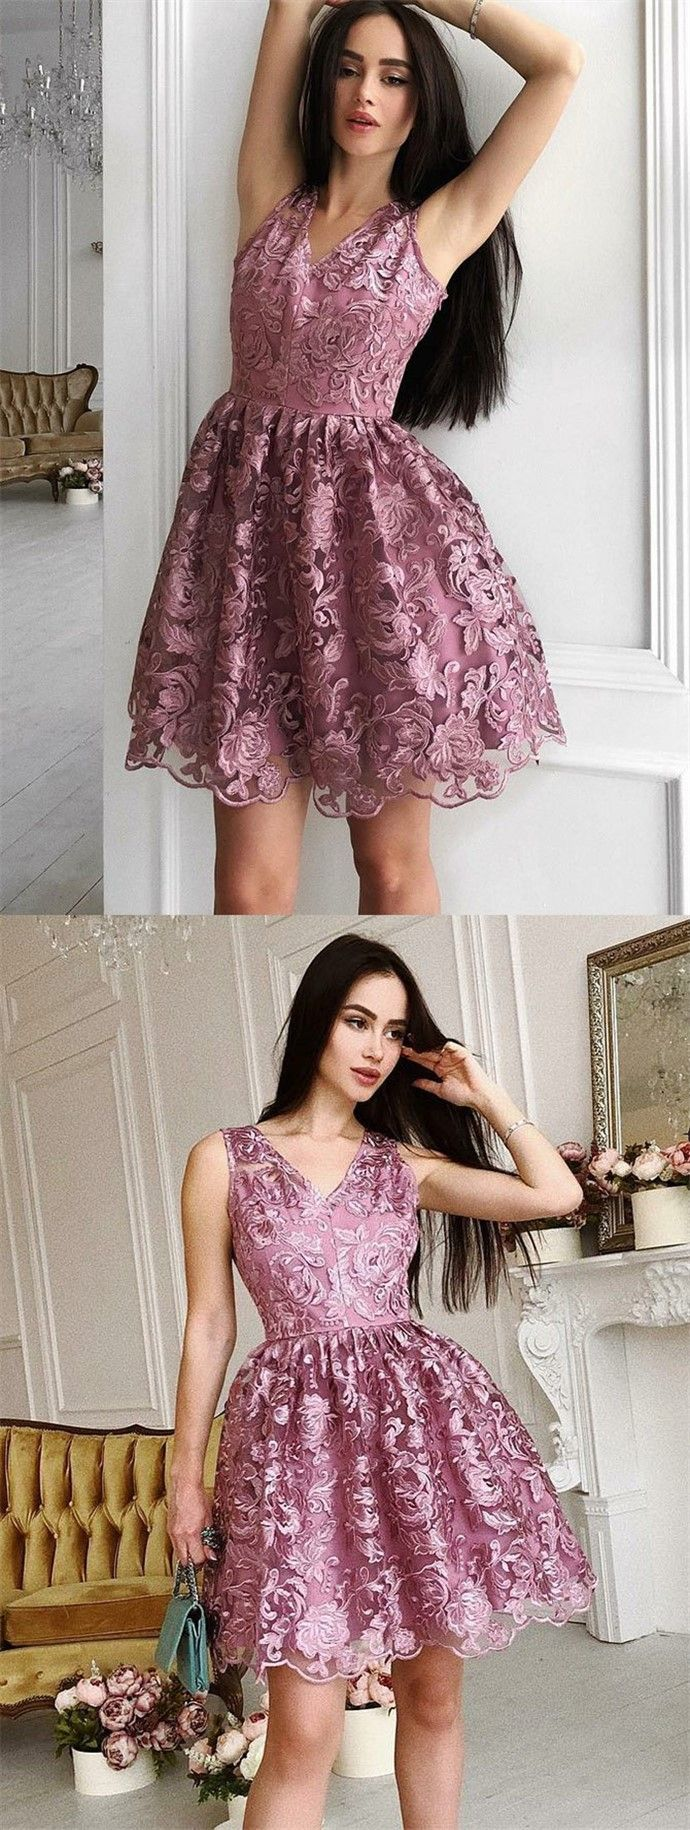 Aline vneck short purple lace homecoming prom party dress summer